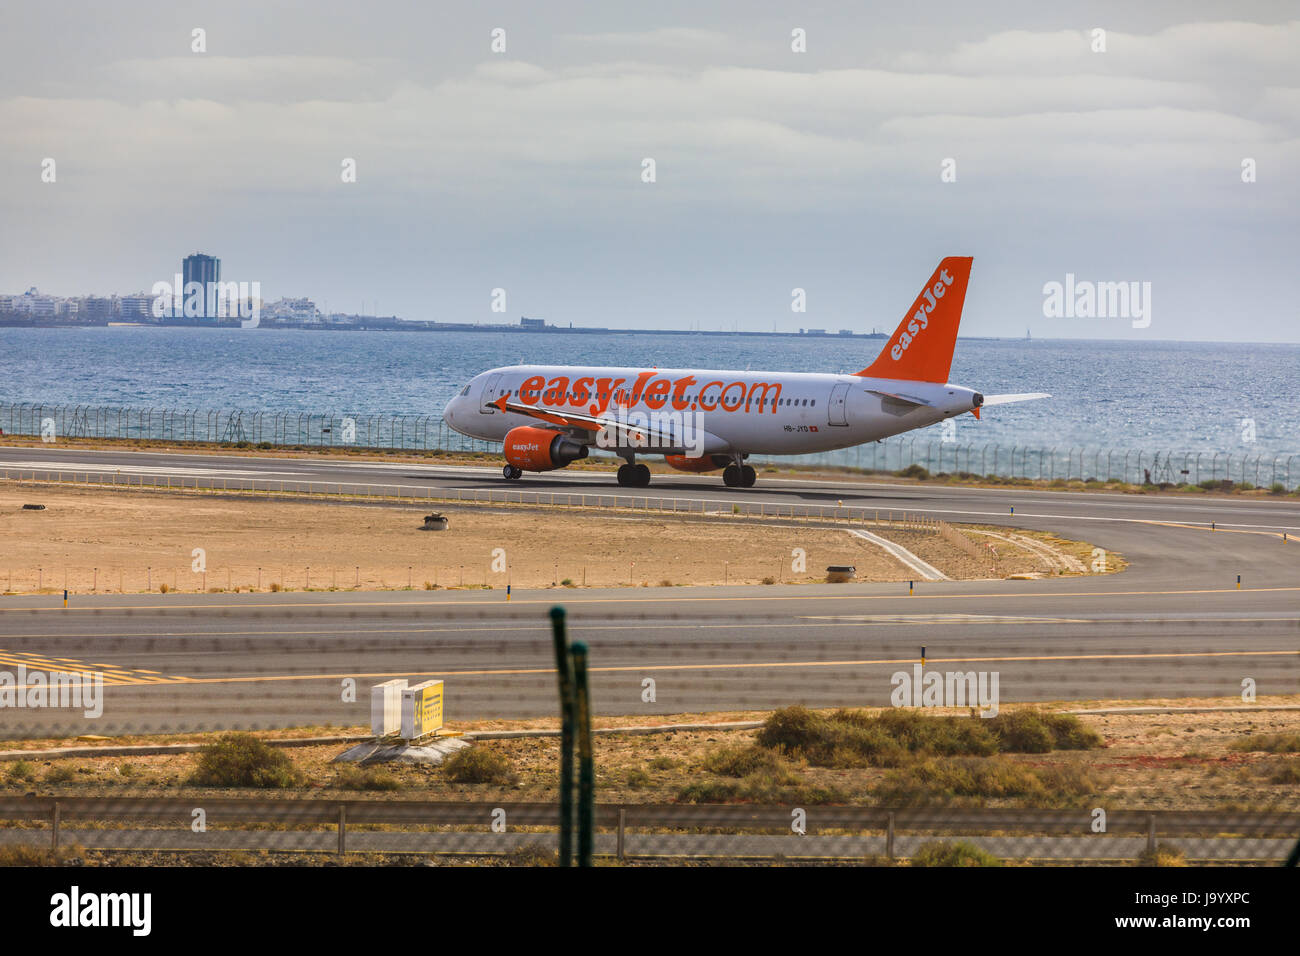 ARECIFE, SPAIN - APRIL, 15 2017: AirBus A320 of easyjet.com ready to take off at Lanzarote Airport - Stock Image